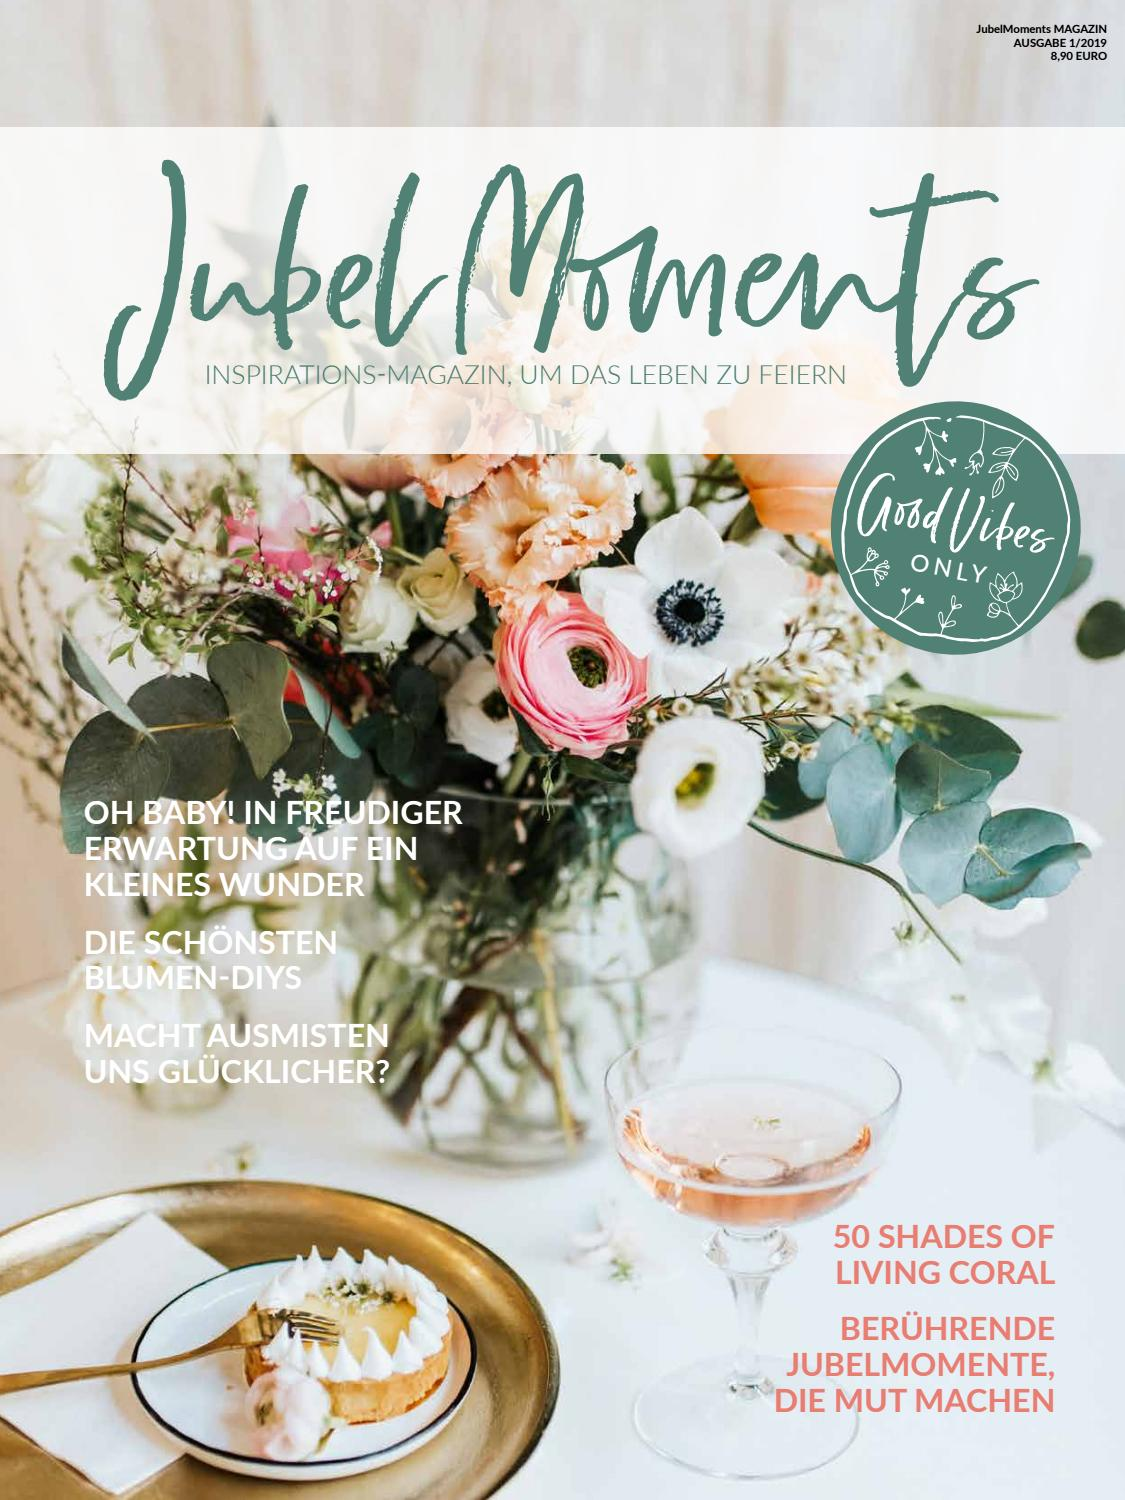 Jubelmoments Magazin Spring Summer 2019 By Jubelmoments Magazin Issuu